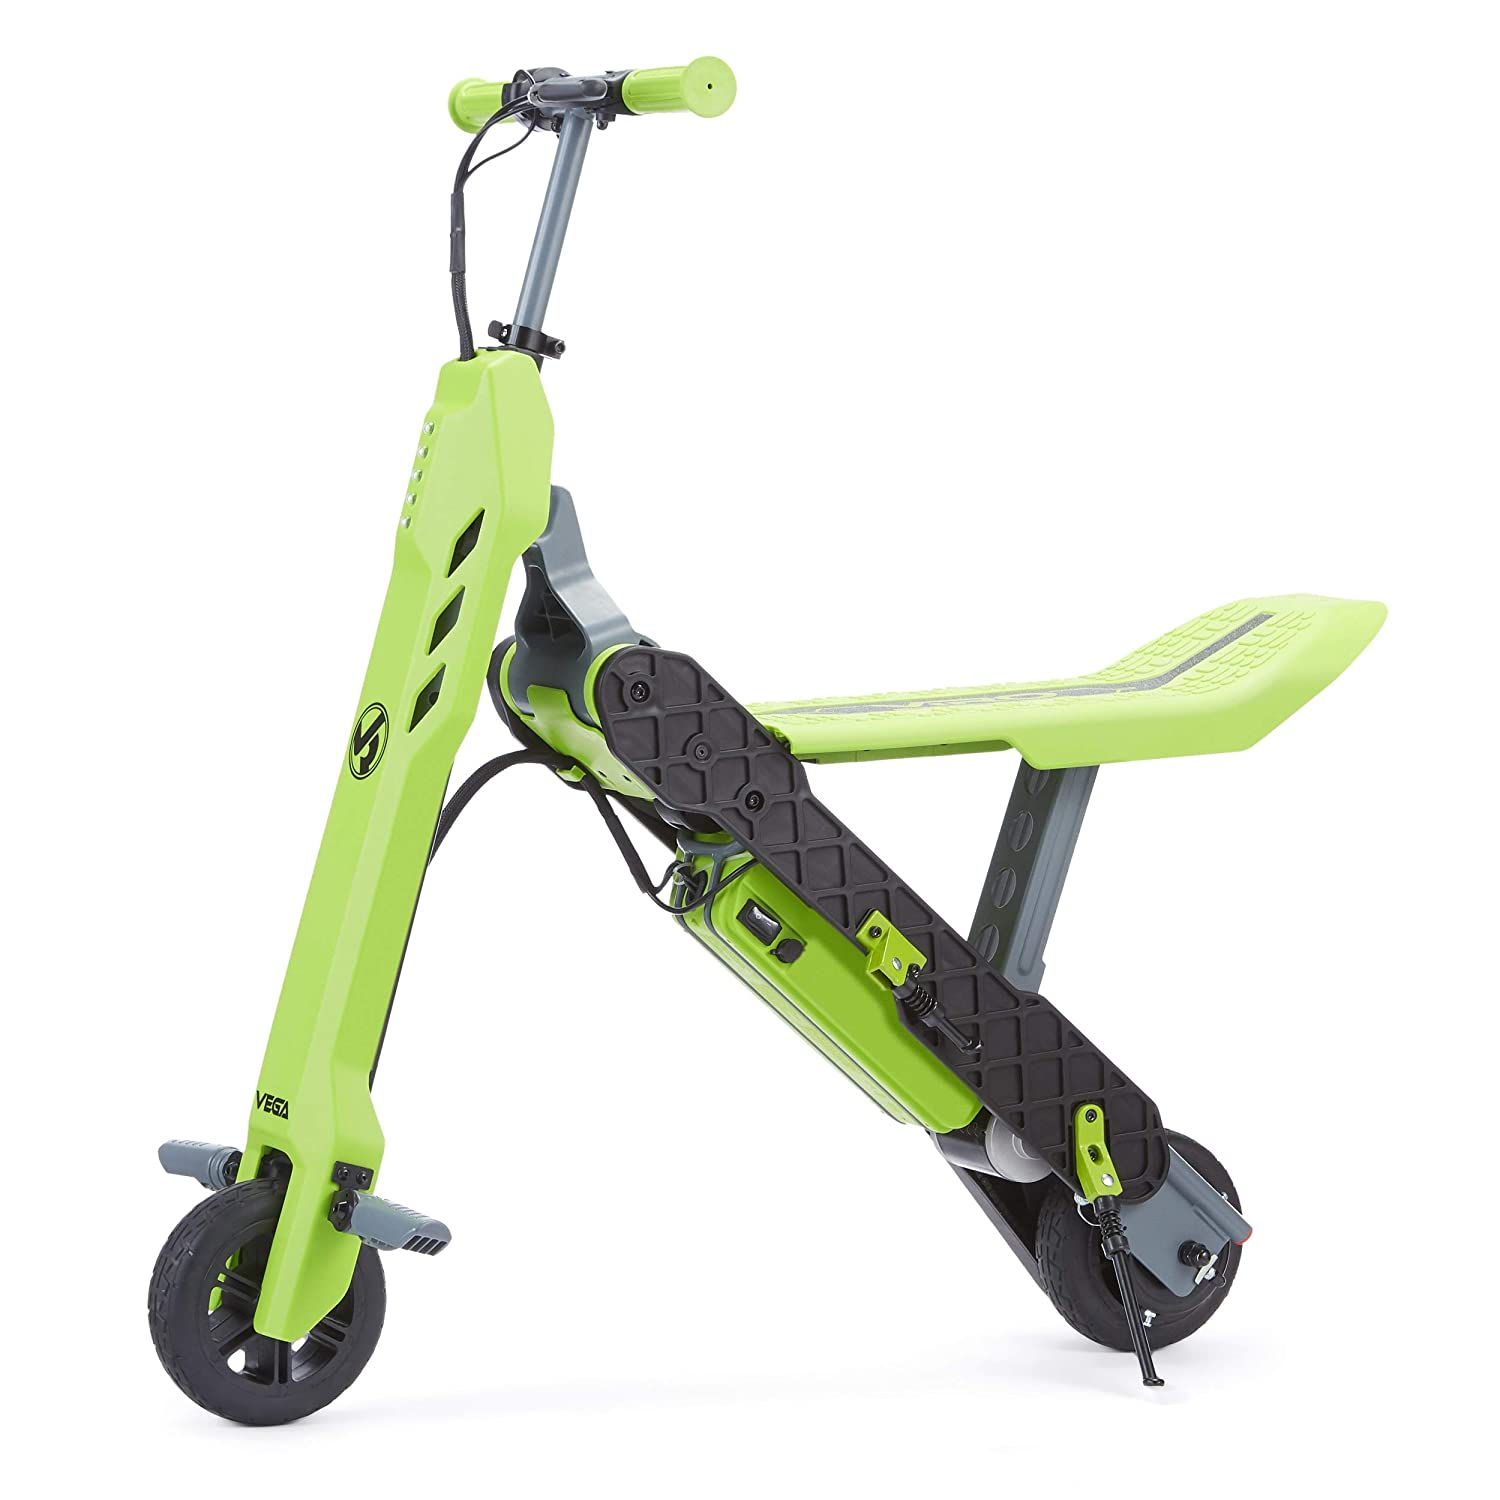 Best Electric Scooter With Seat | Razor,Currie & More